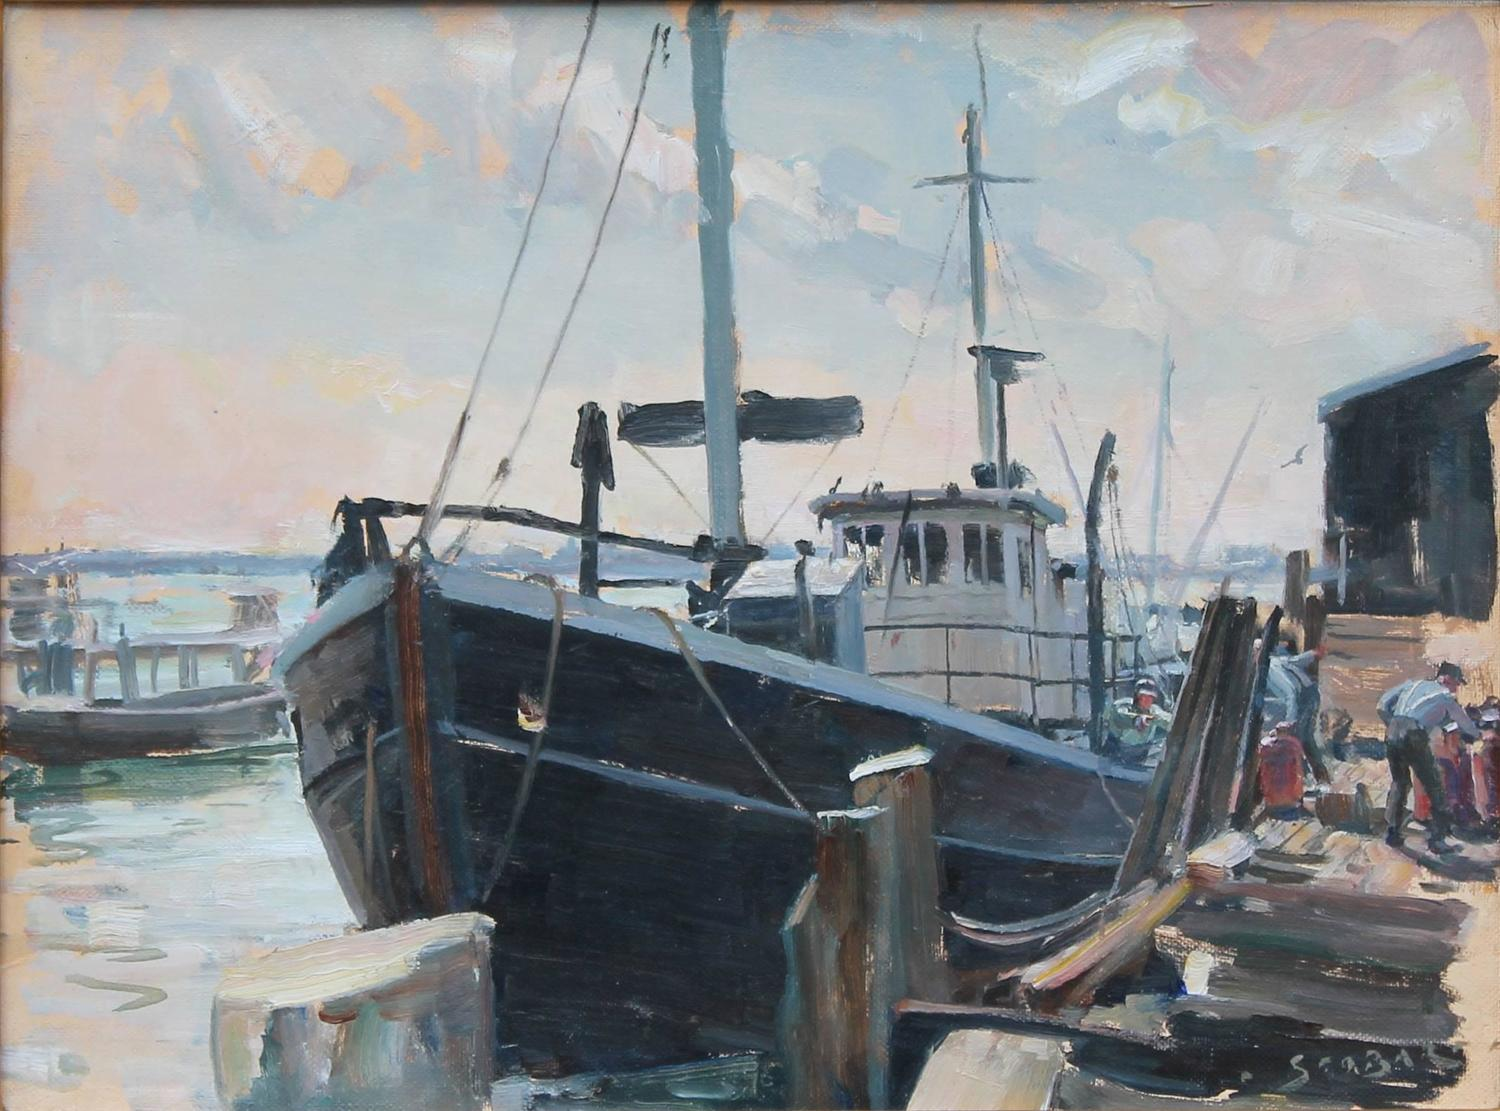 John stobart fishing pier newport for sale at 1stdibs for Newport pier fishing